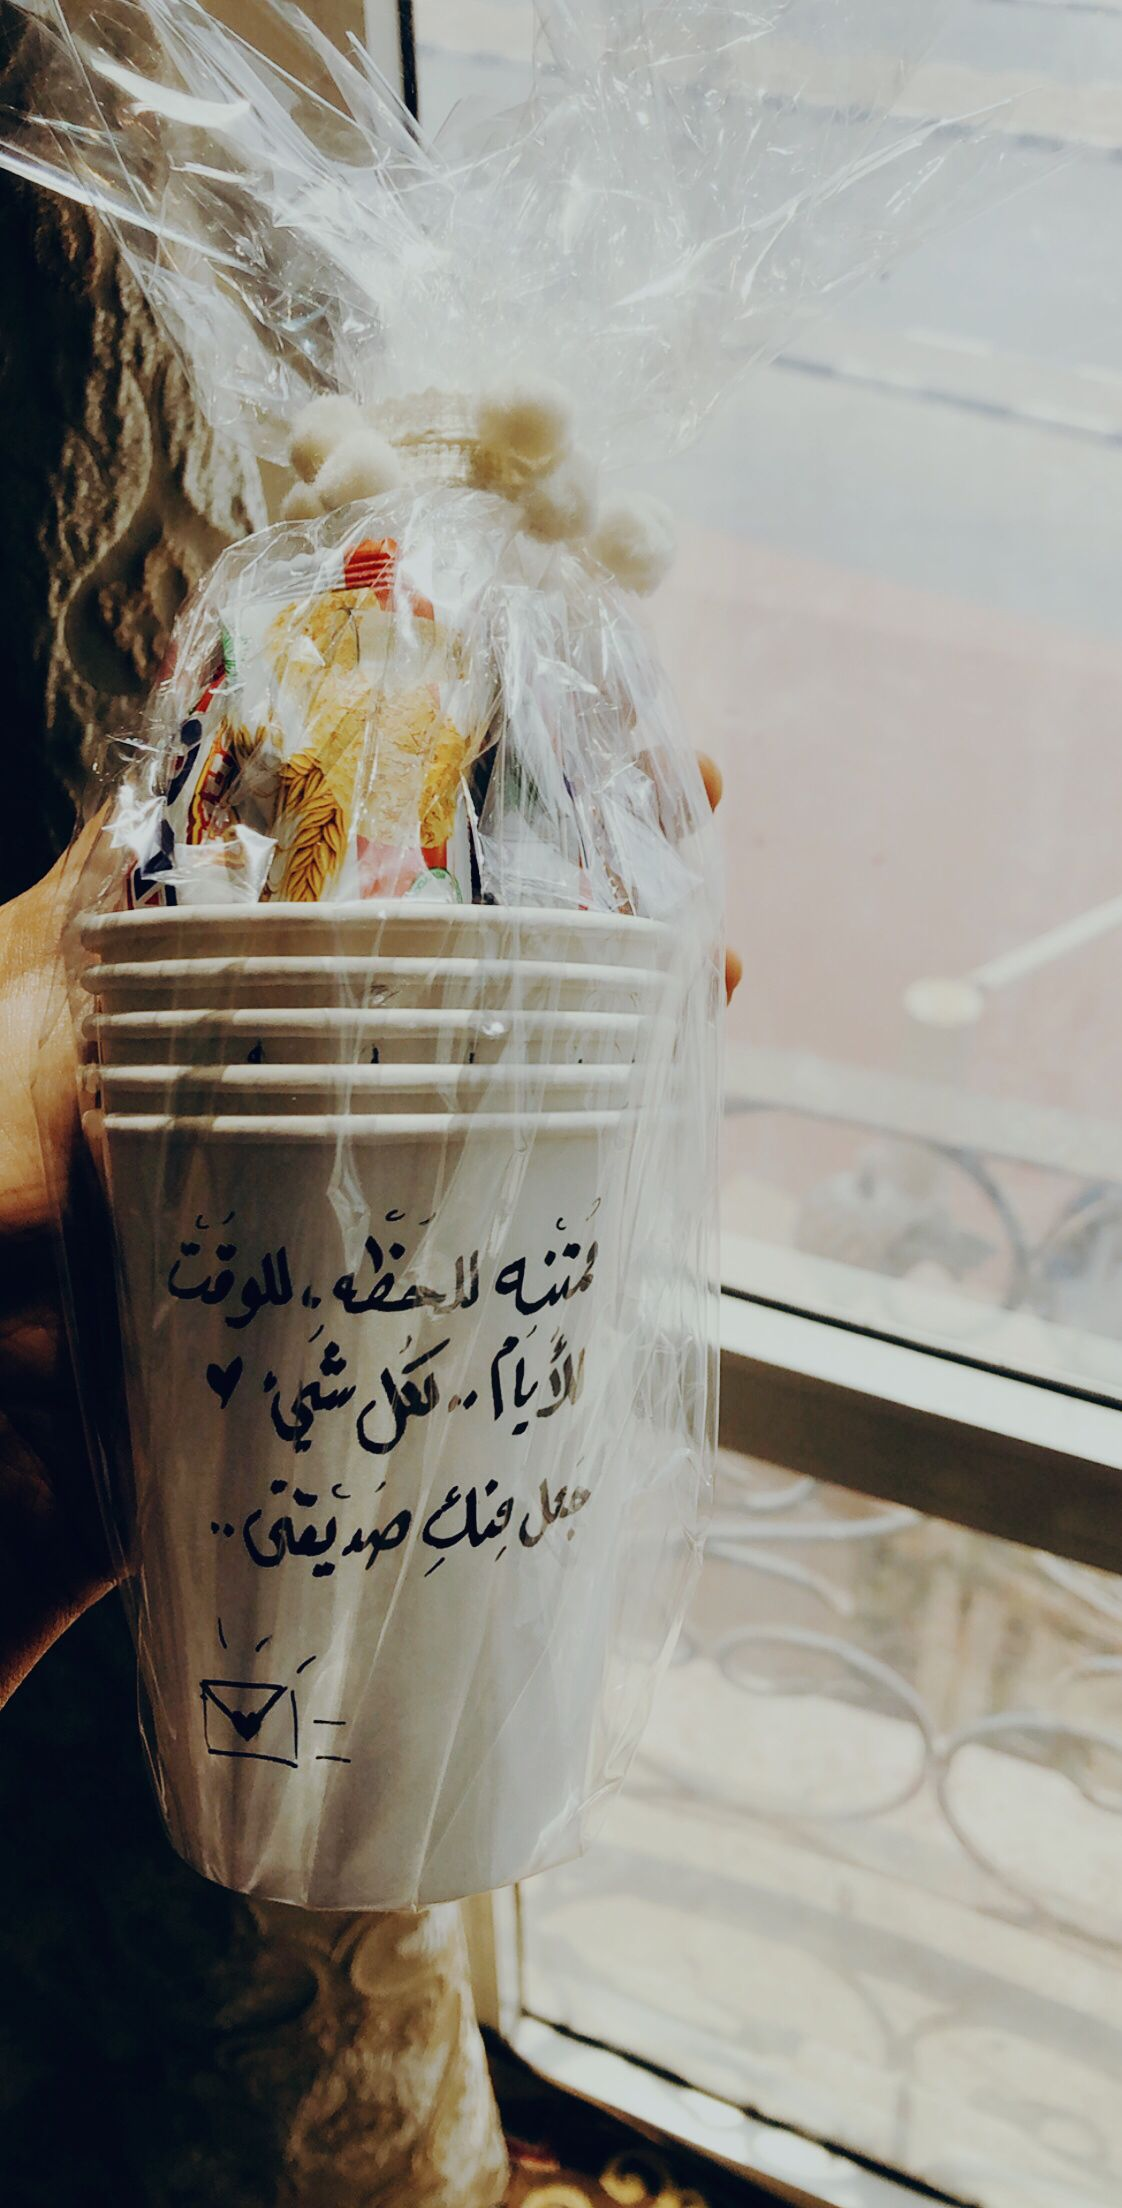 Pin By Positive Aisha On اشغال يدويه وافكار Diy Takeout Container Life Quotes Container